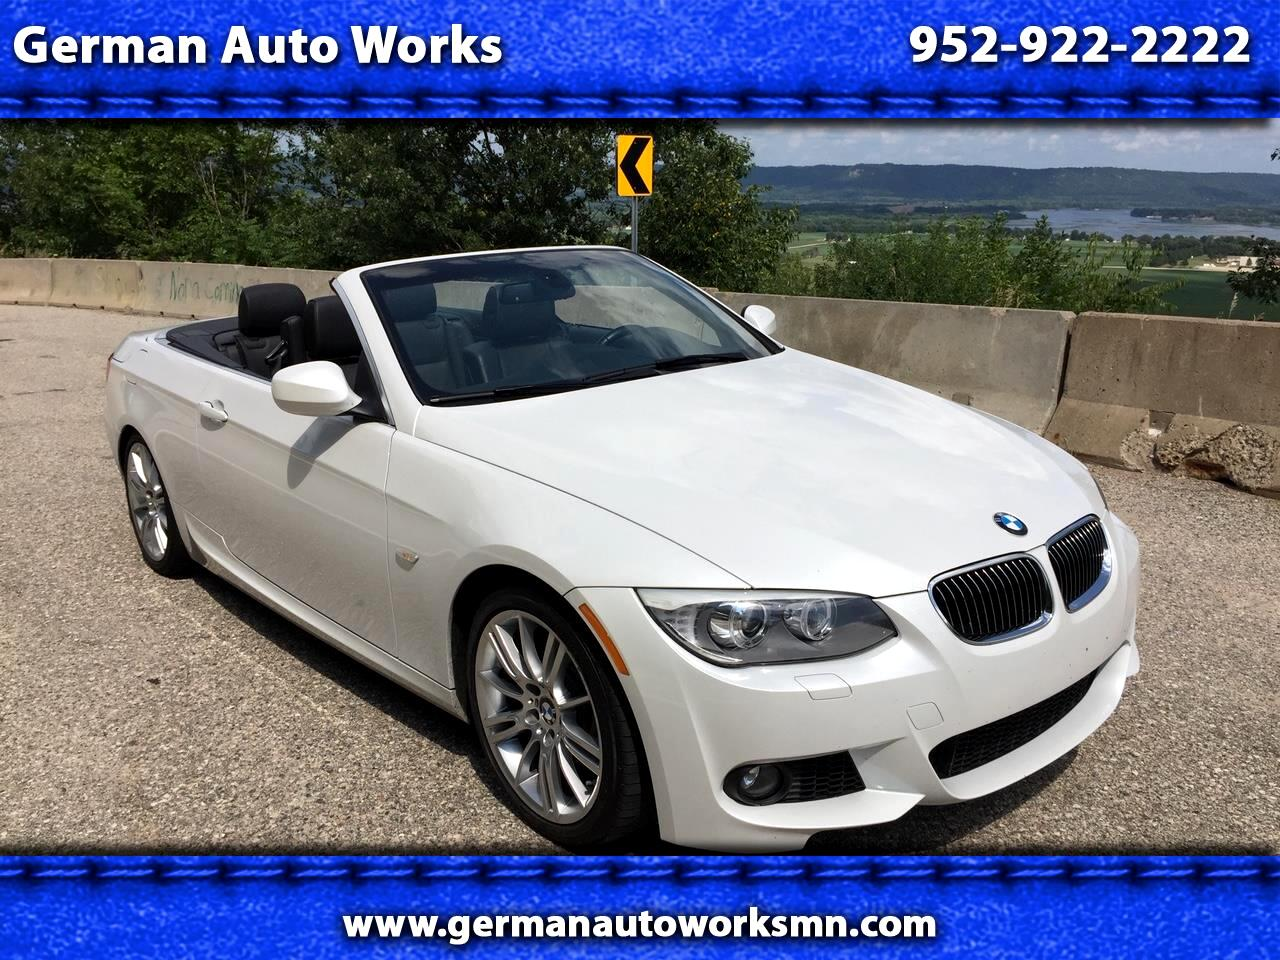 2013 BMW 3 Series 335 CIC M Sport